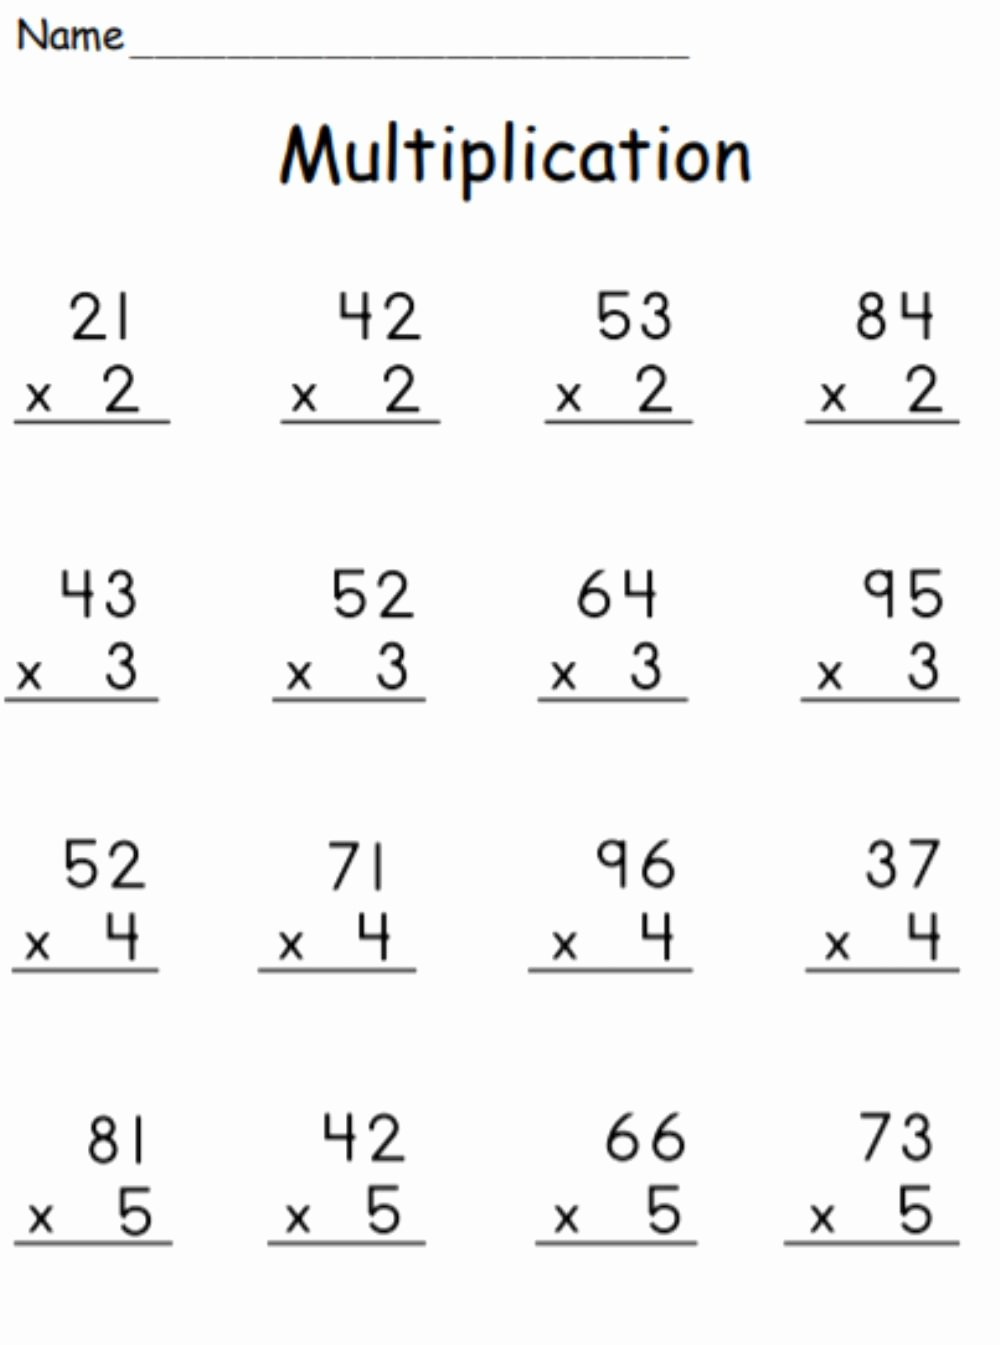 Two Digit by One Digit Multiplication Worksheets New Multiplication 2 Digit by 1 Digit with Regrouping